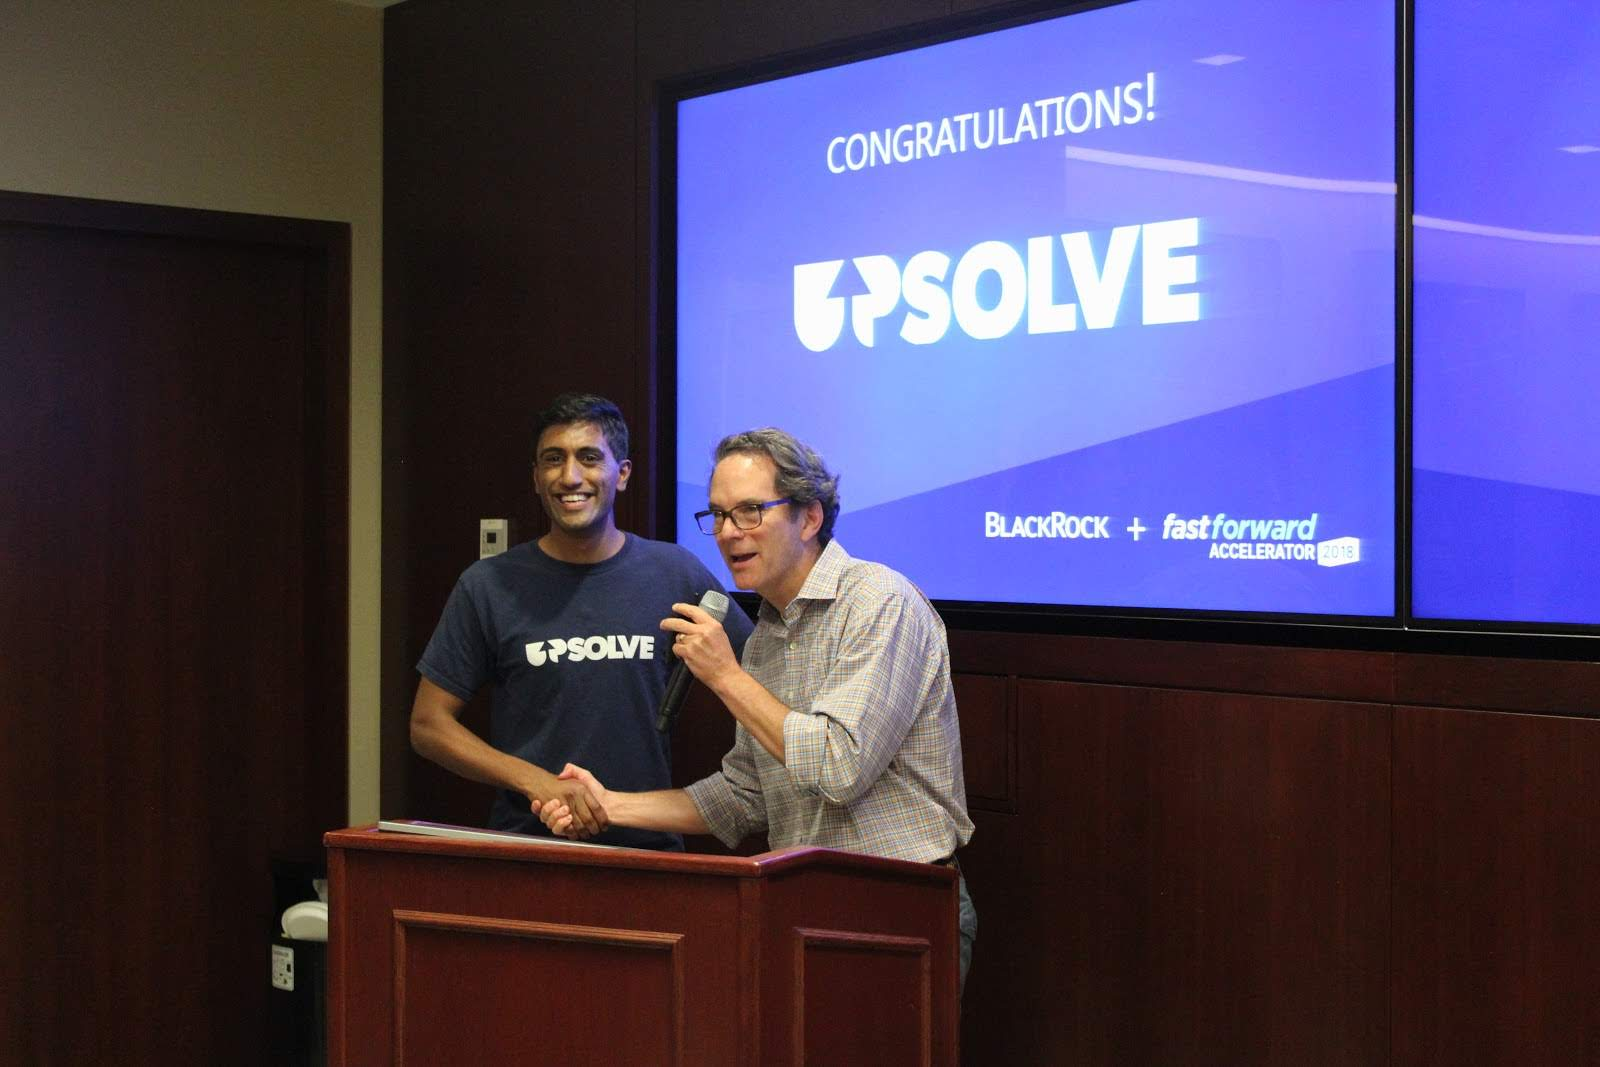 Upsolve's Rohan Pavuluri accepts the BlackRock Employee Award from Jody Kochansky